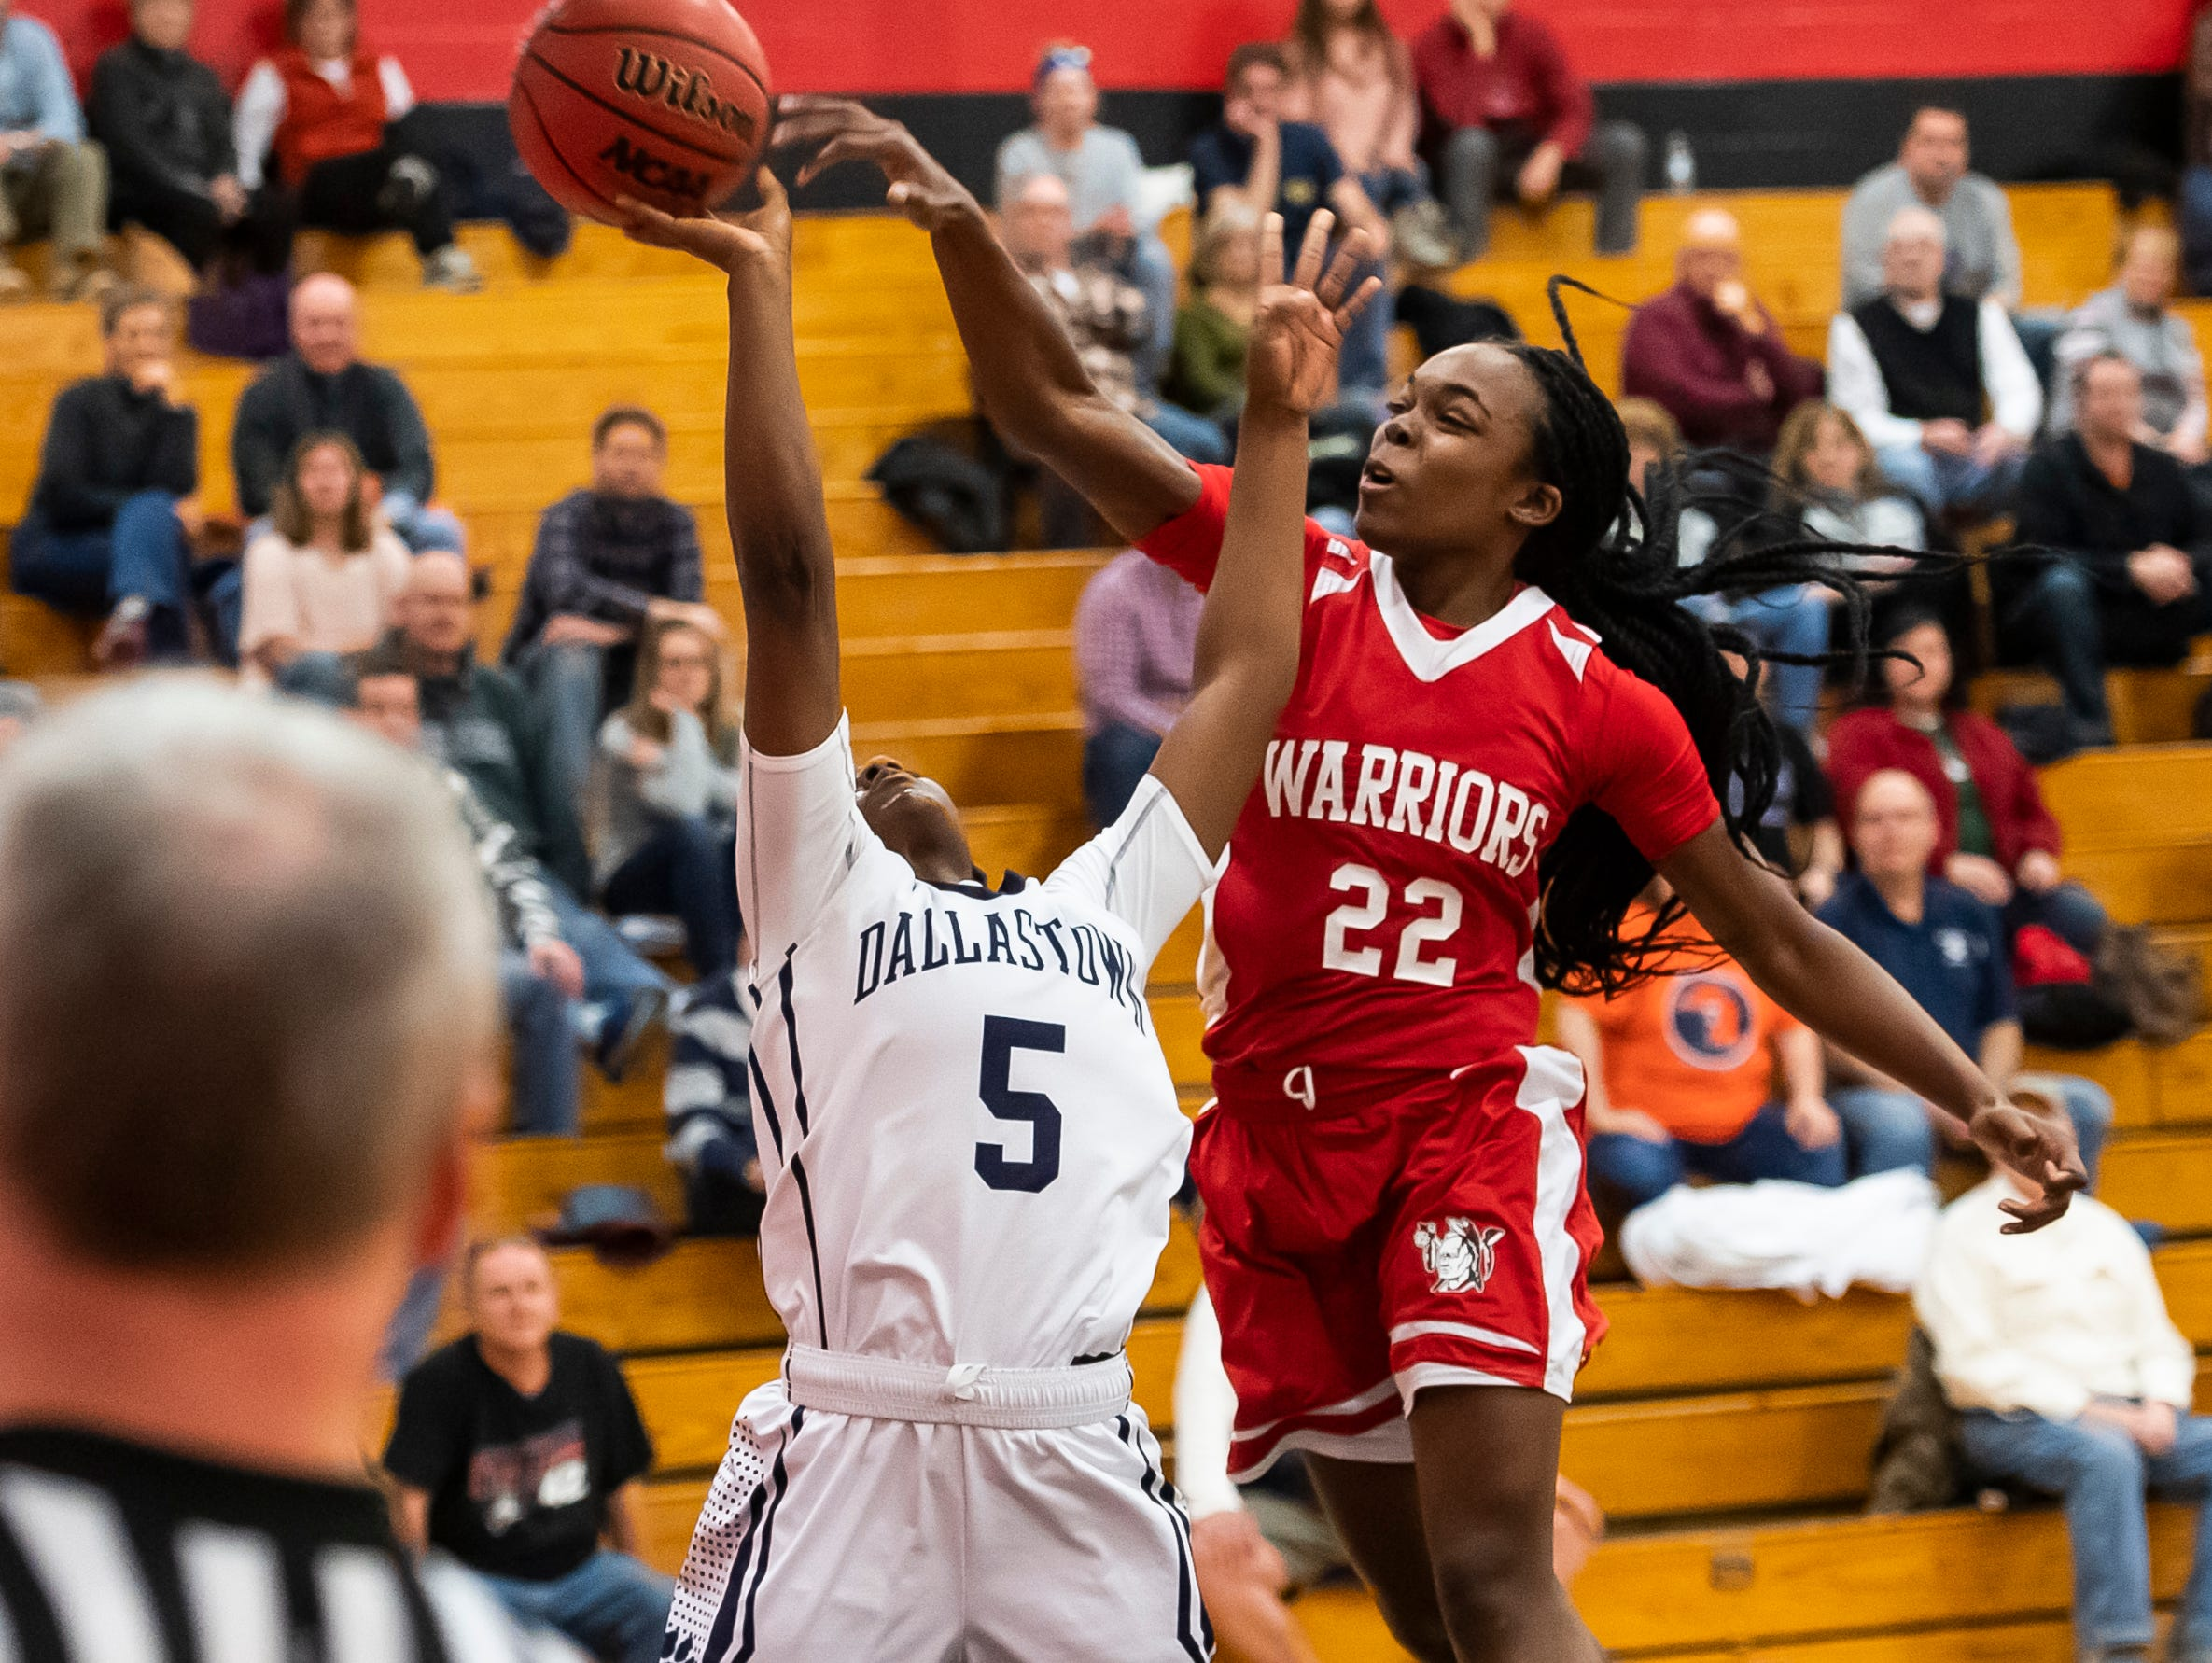 Susquehannock's Jaden Walker (22) blocks a shot from Dallastown's D'Shantae Edwards in a YAIAA quarterfinal game at Dover High School Friday, February 8, 2019. The Wildcats won 42-29.